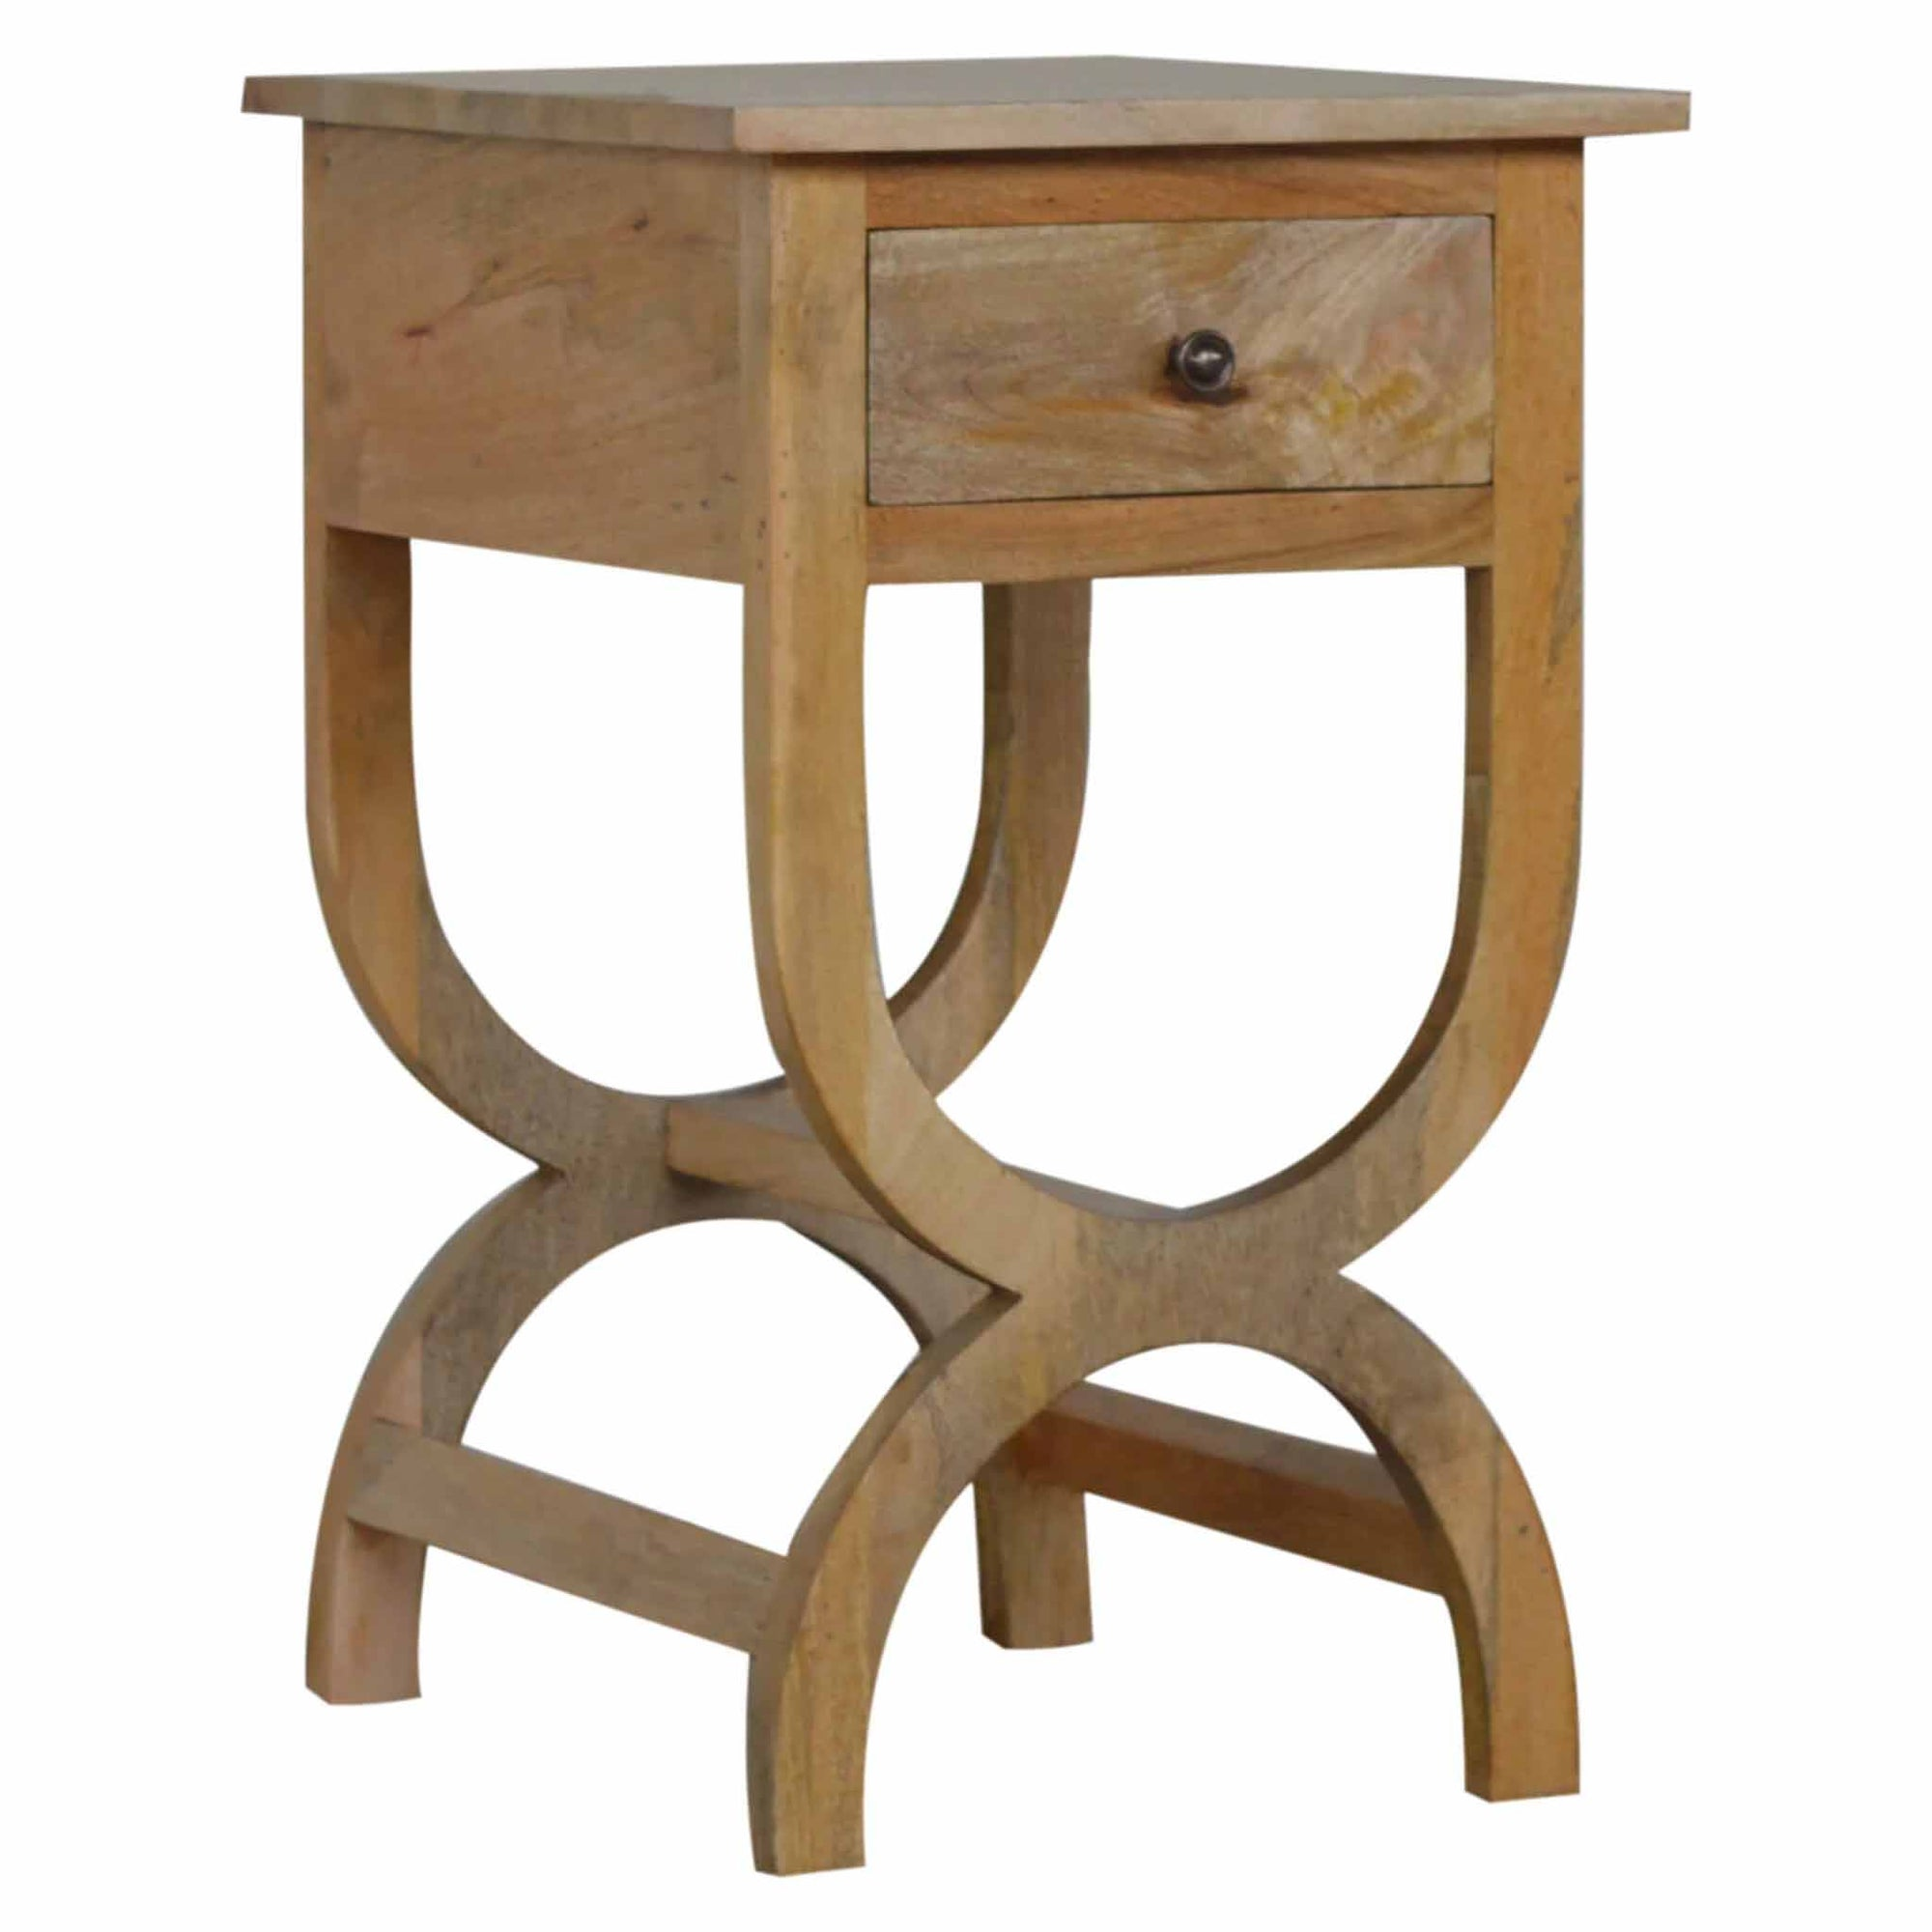 The Artisan Mango Wood 1 Drawer Bedside Table with Serpentine Feet from Roseland Furniture